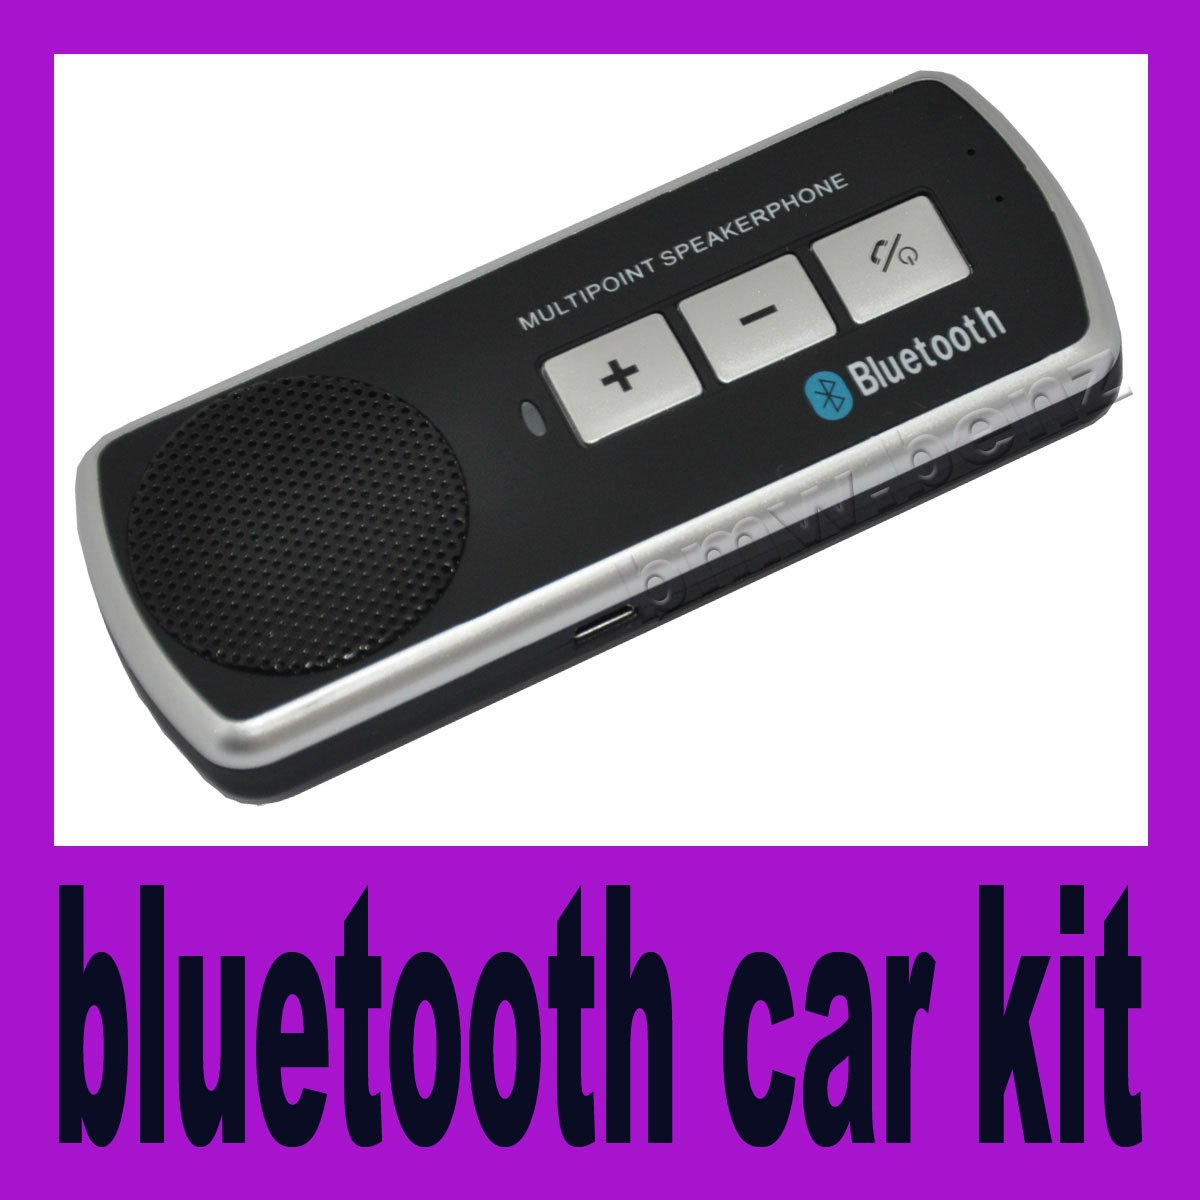 Kit Bluetooth Manos Libres Multipunto Con Altavoz Car Kit Manos Libres Bluetooth Para